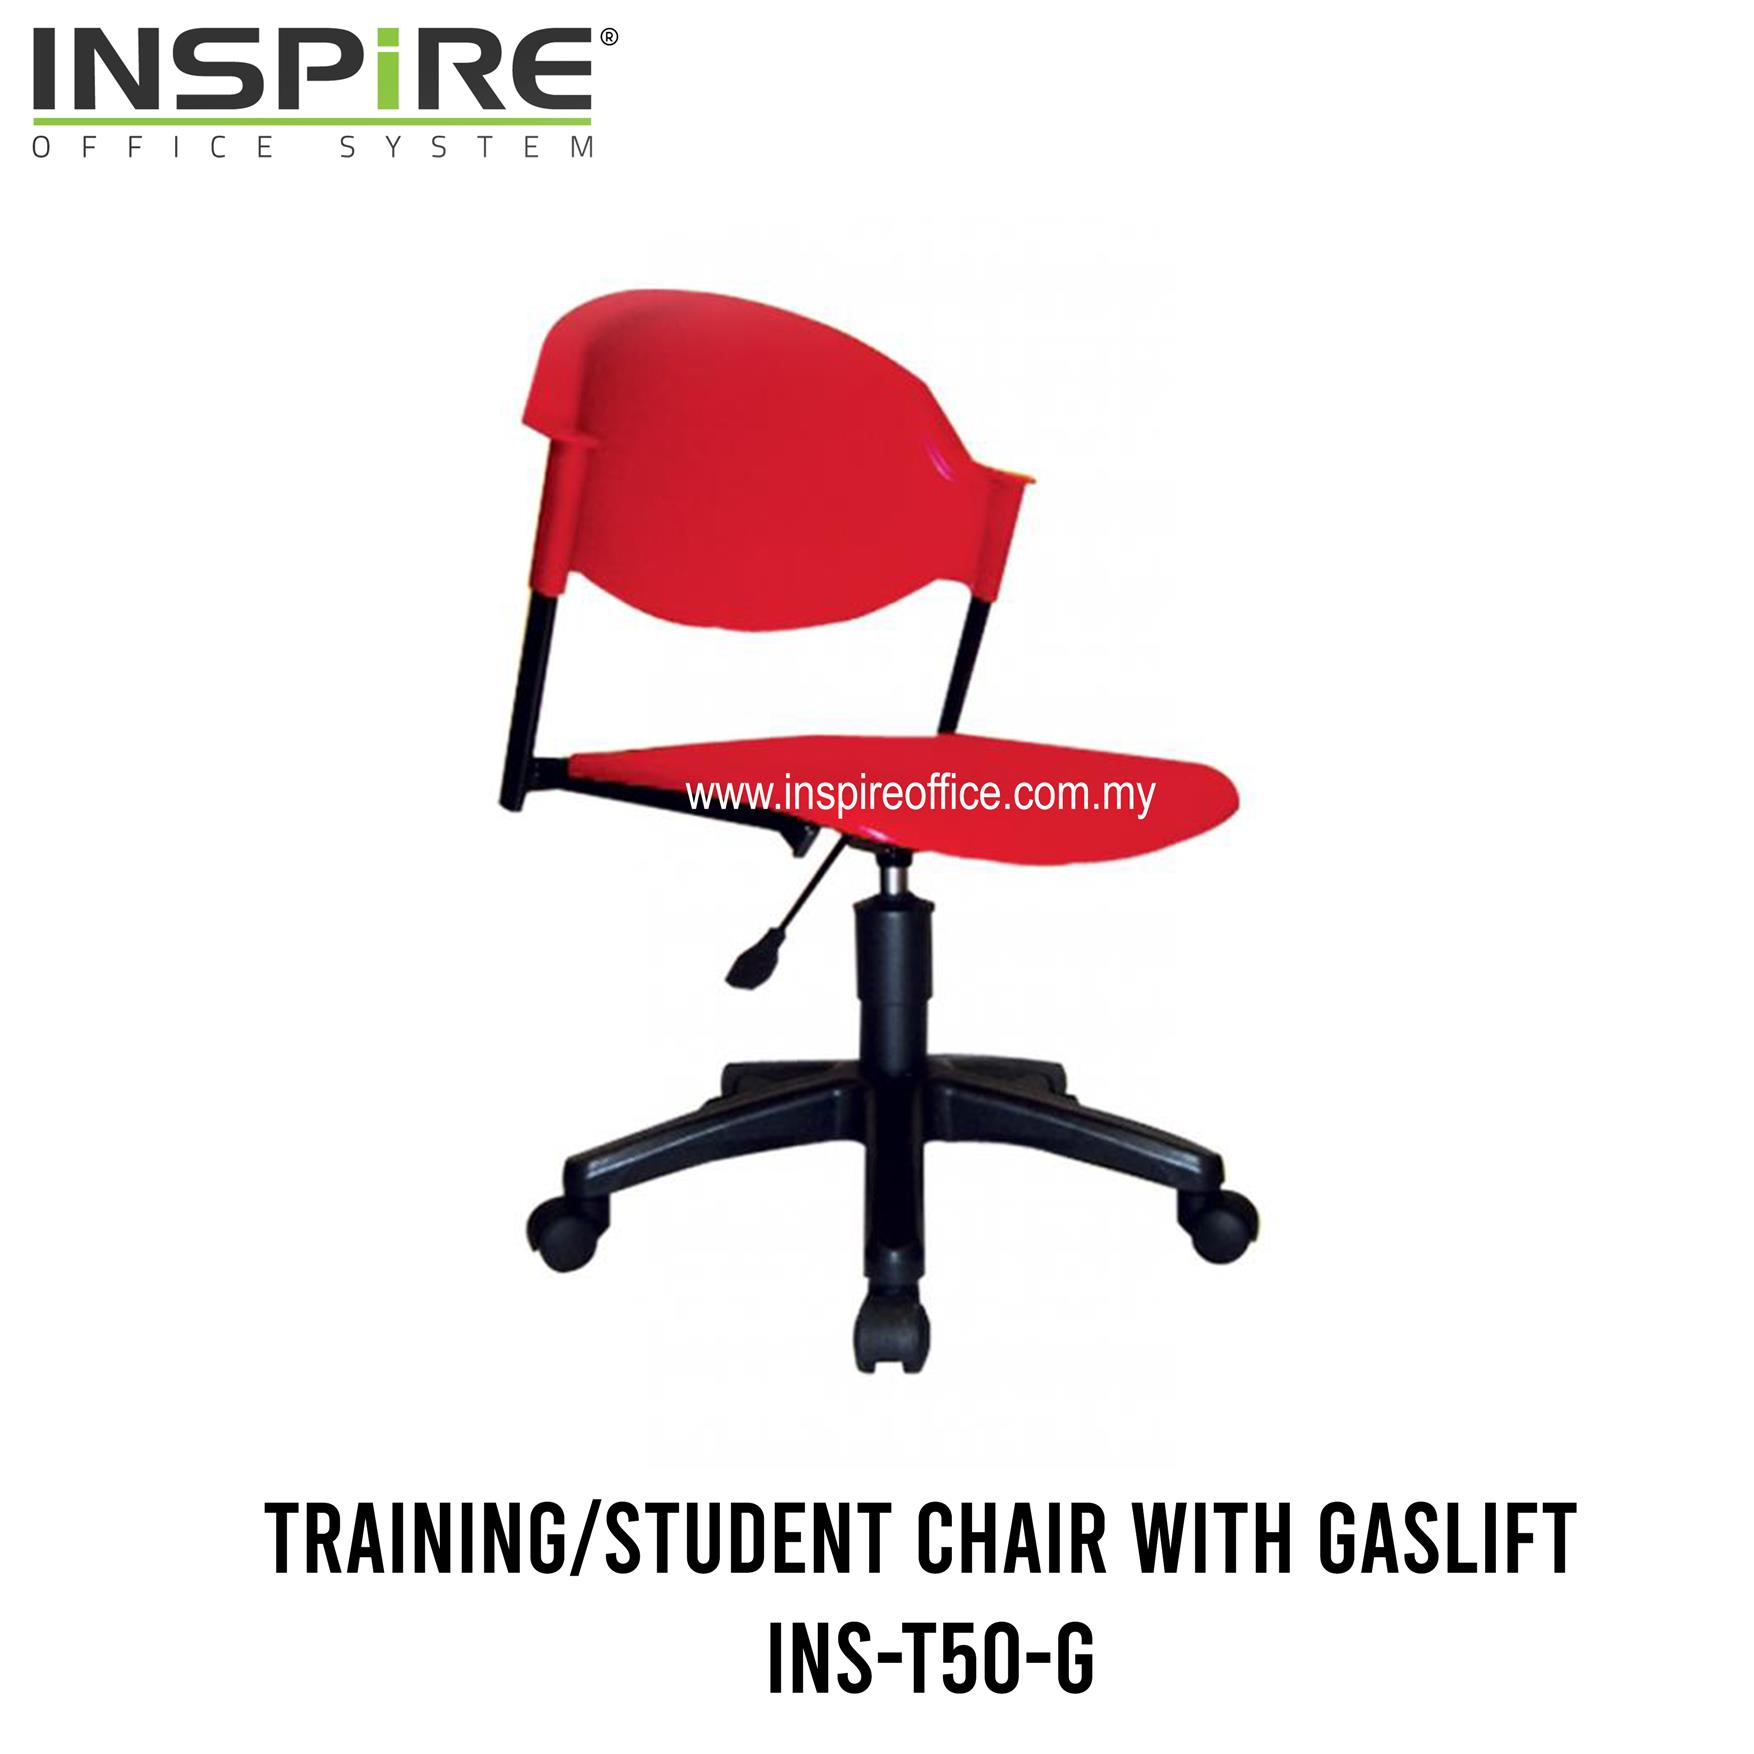 INS-T50-G Training/Student Chair With Gaslift